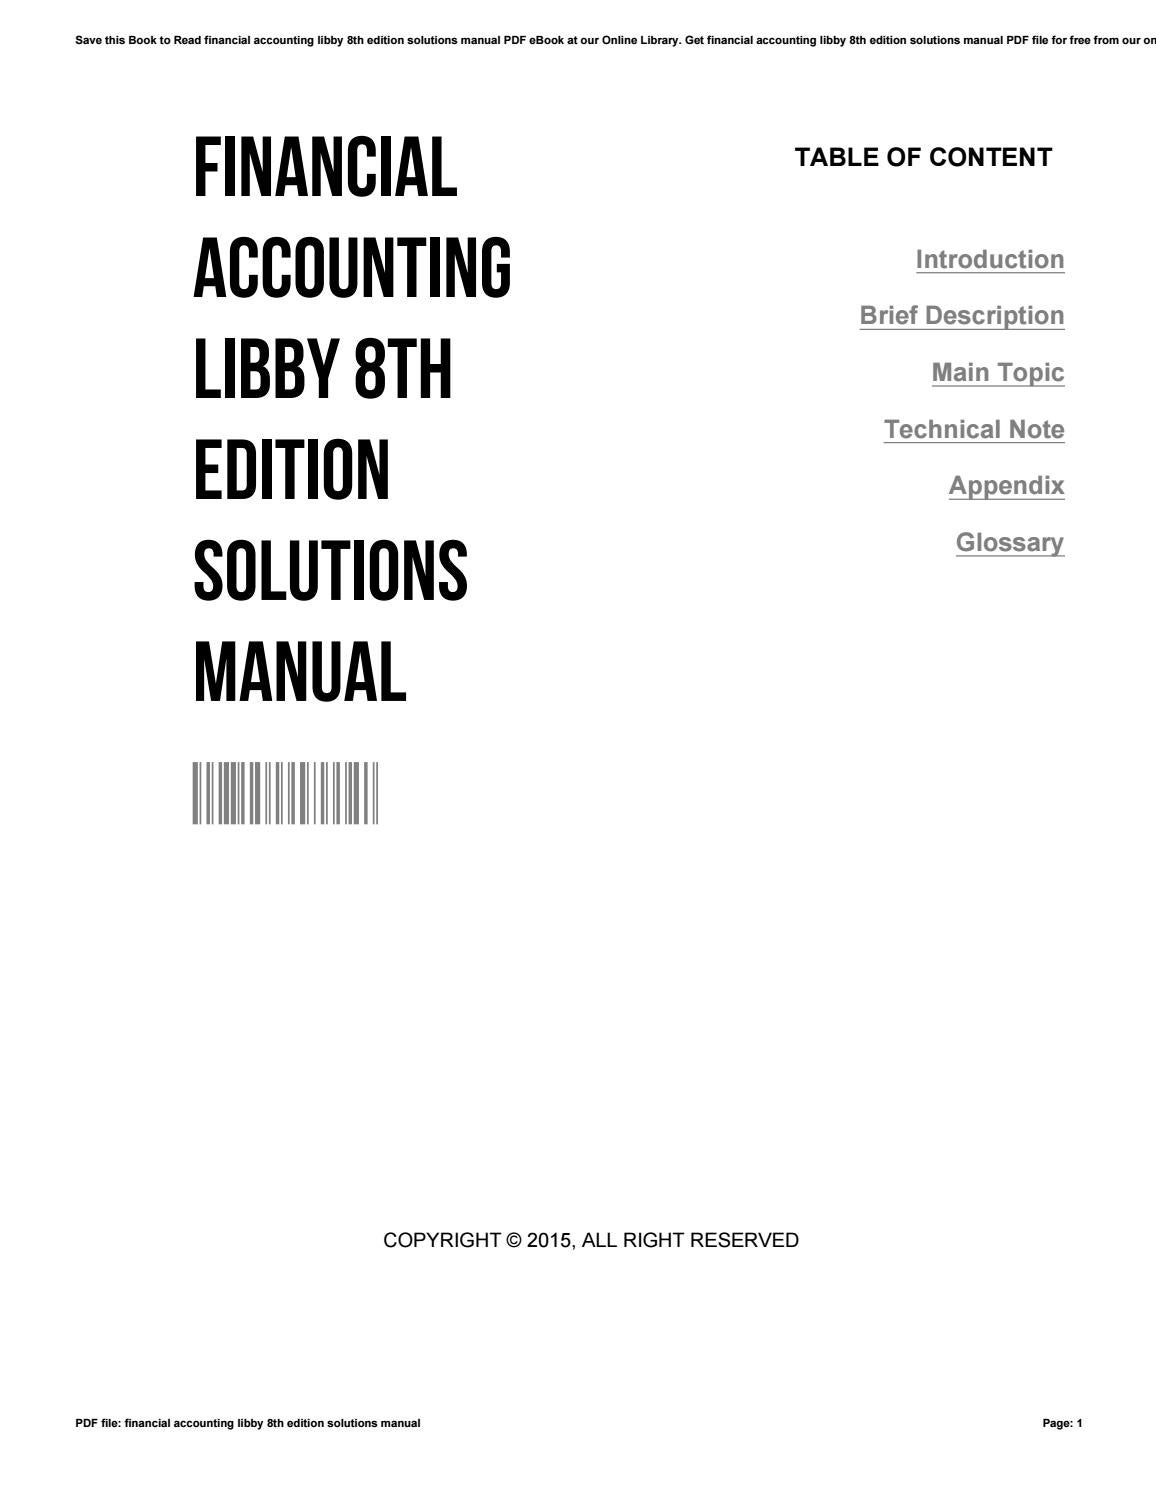 Financial accounting libby 8th edition solutions manual by  CarolinaWoods4808 - issuu